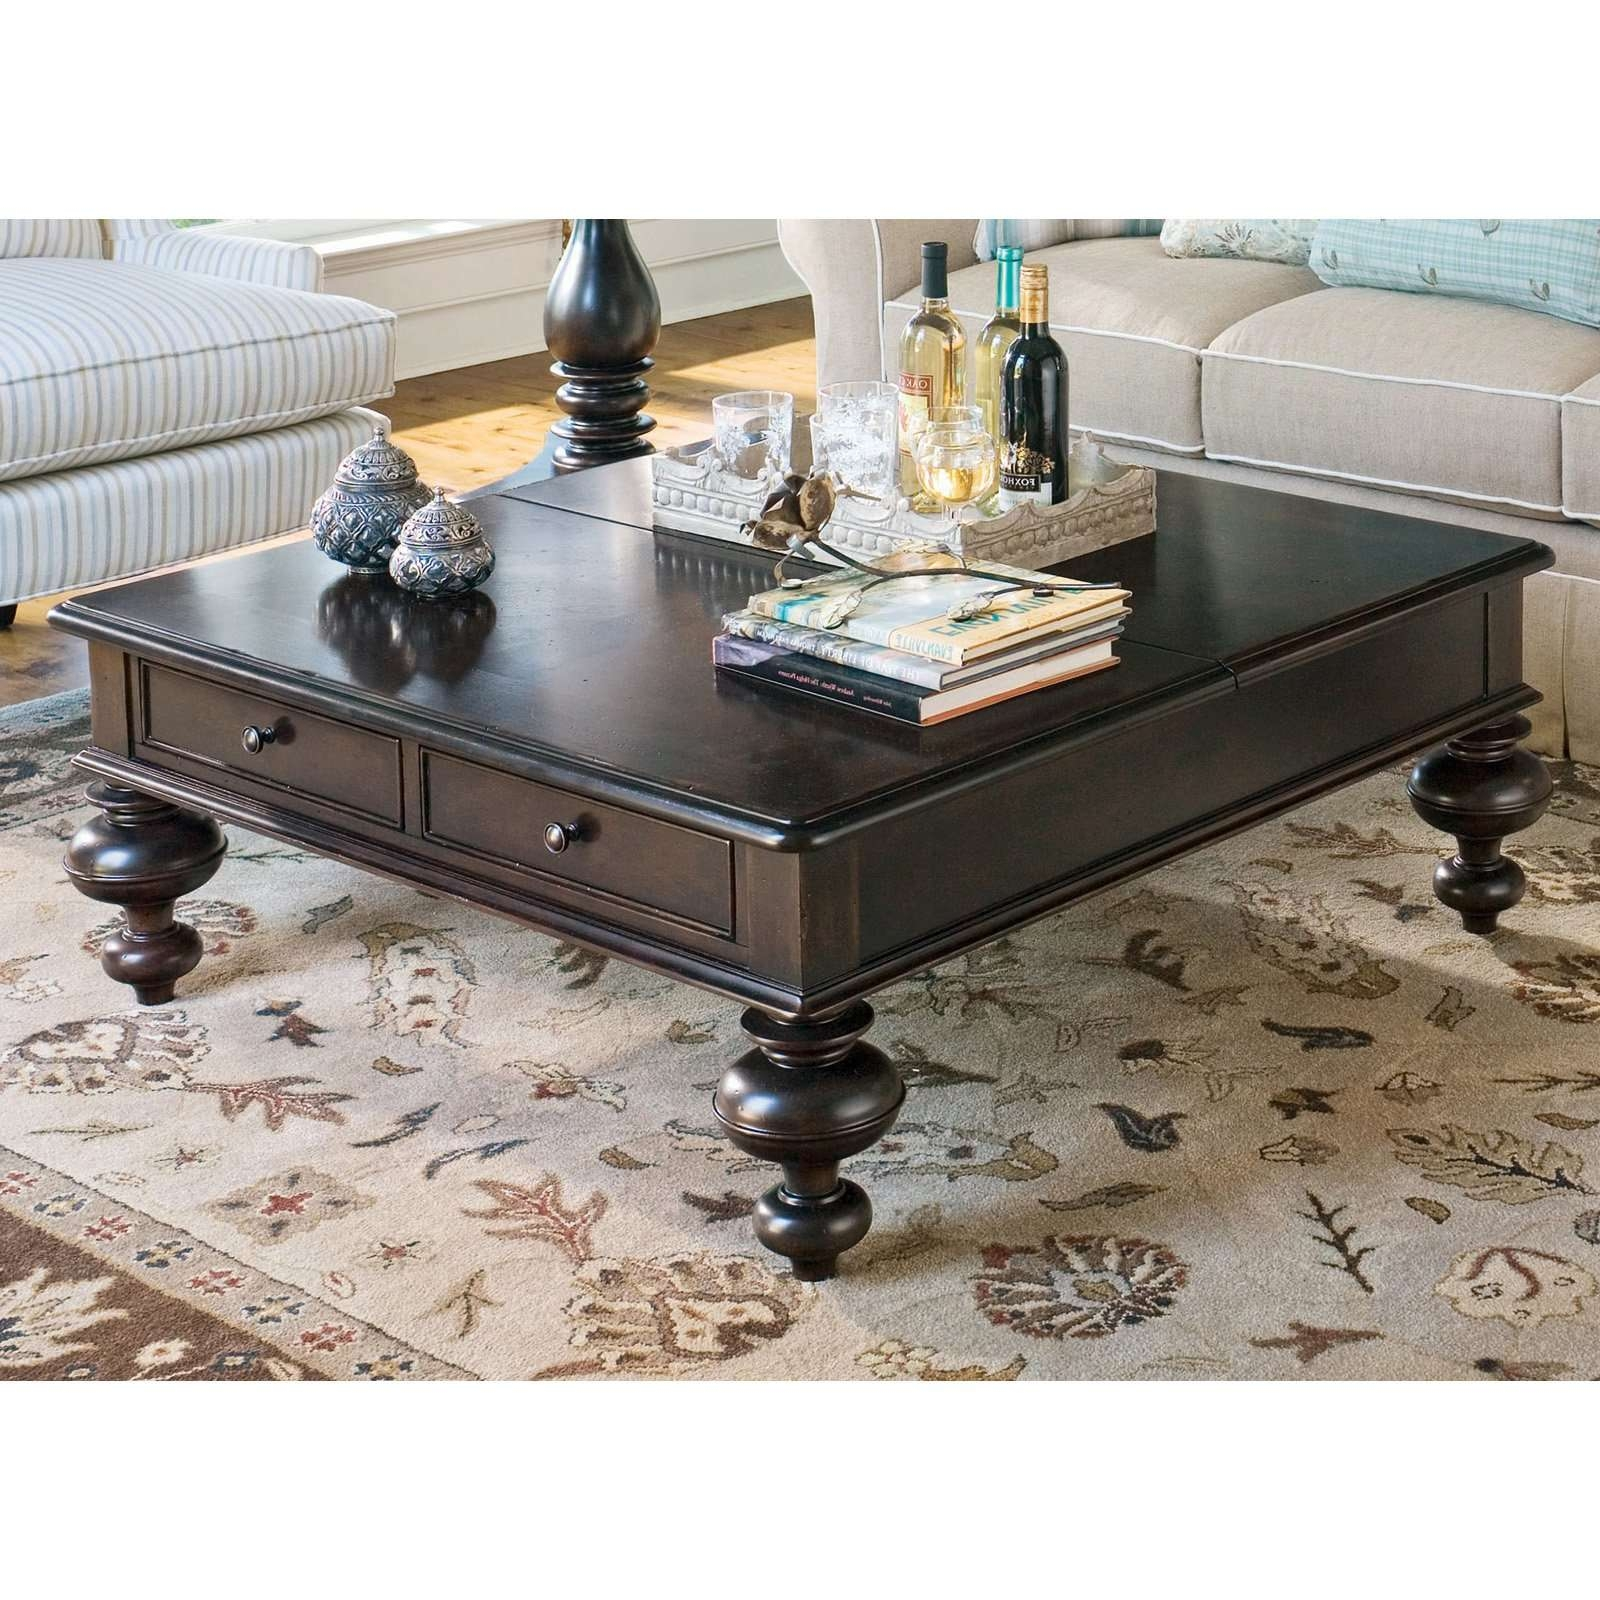 Most Recent Lift Top Coffee Tables With Storage Regarding Paula Deen Home Put Your Feet Up Square Linen Wood Lift Top Coffee (View 15 of 20)